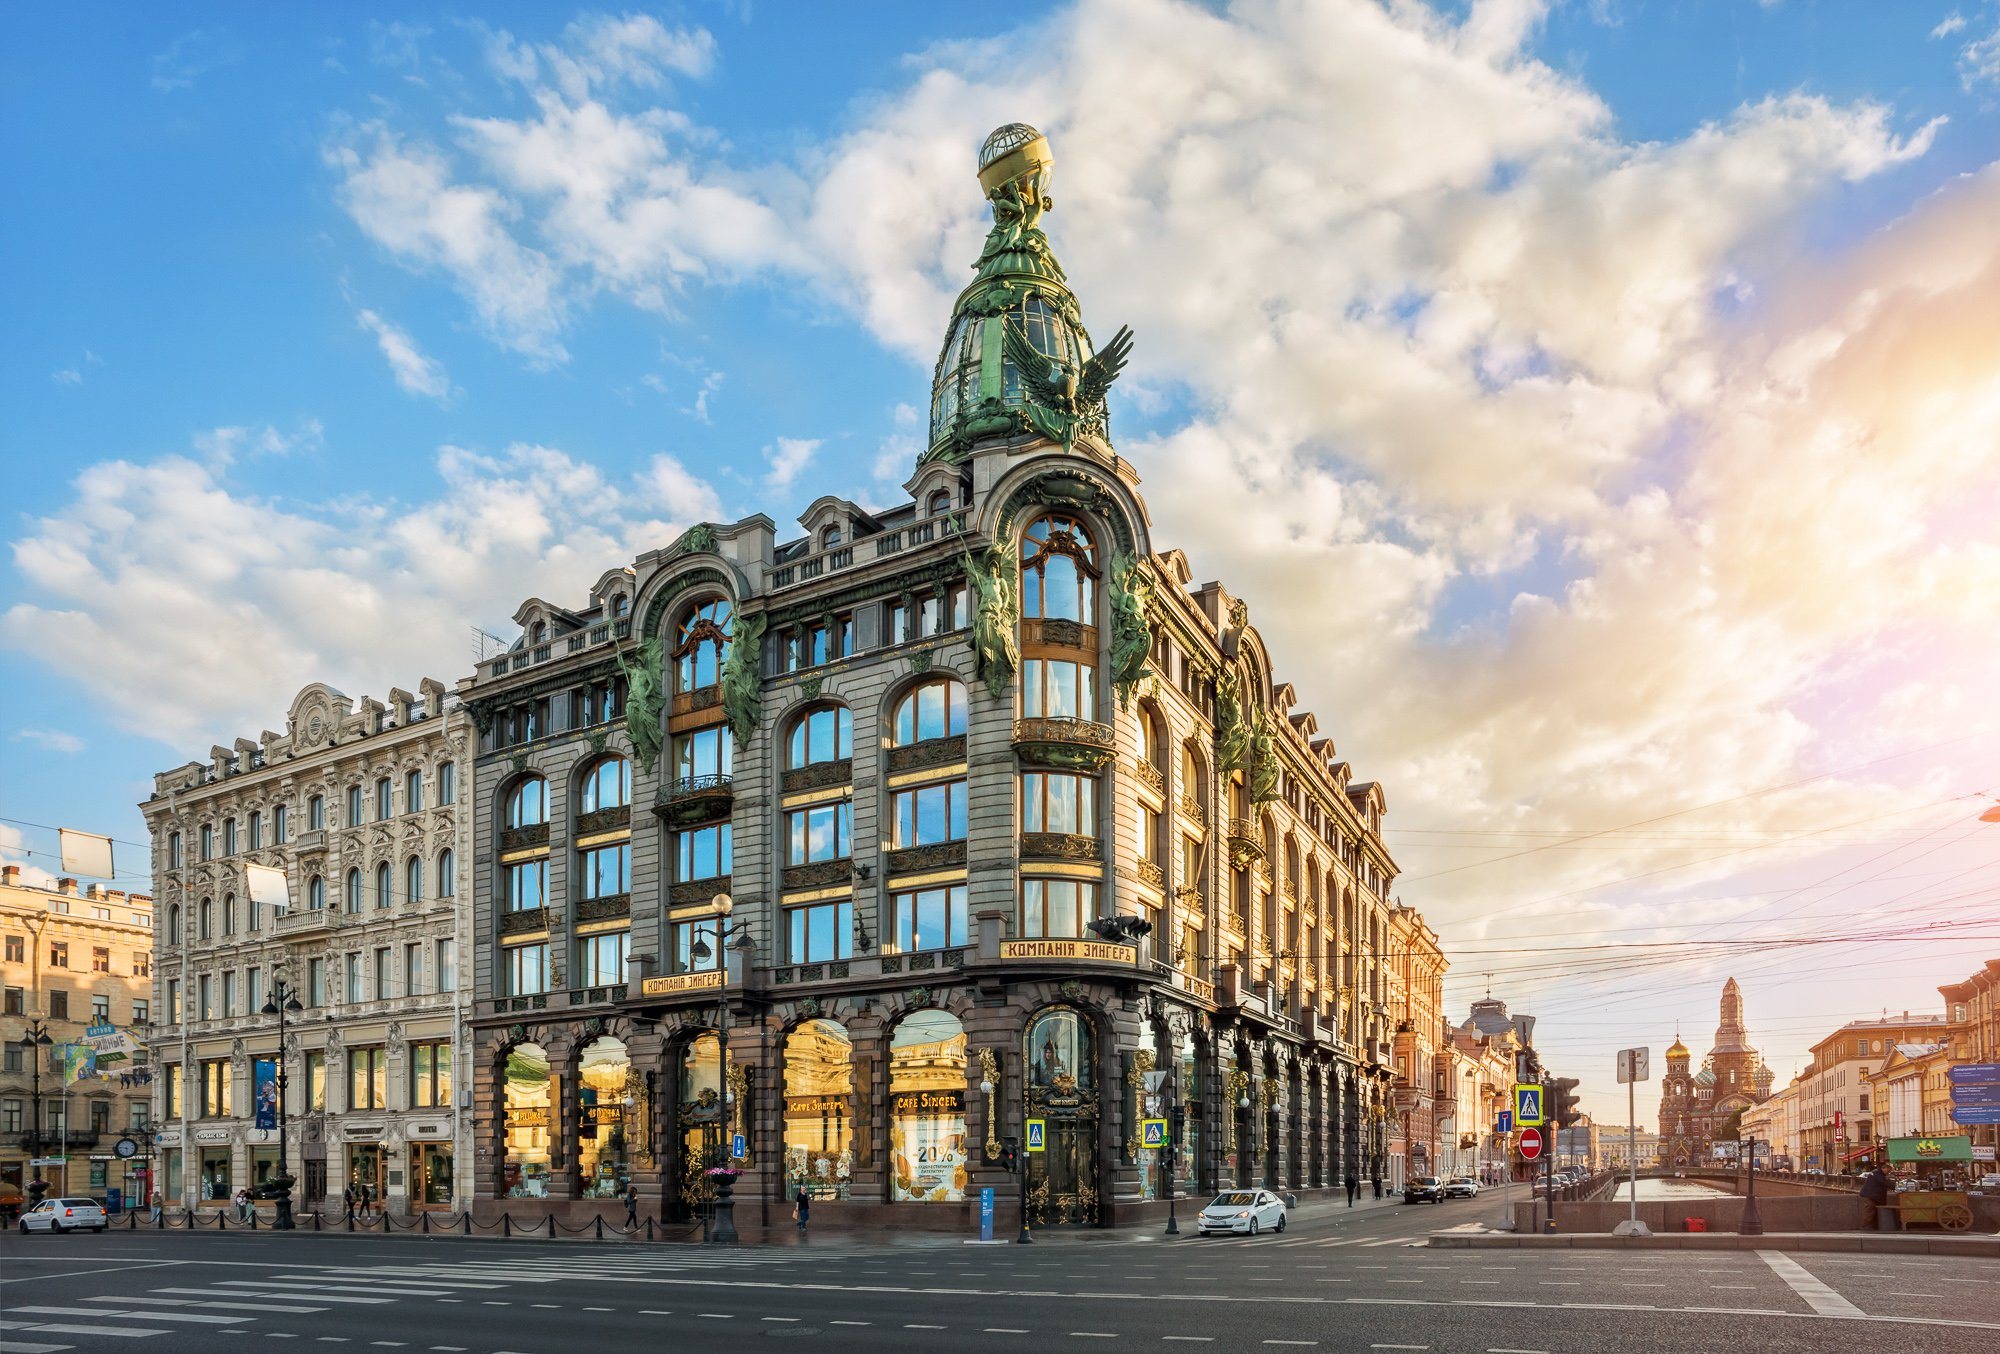 Singer House on Nevsky Prospekt in St. Petersburg, lit by the morning summer sun